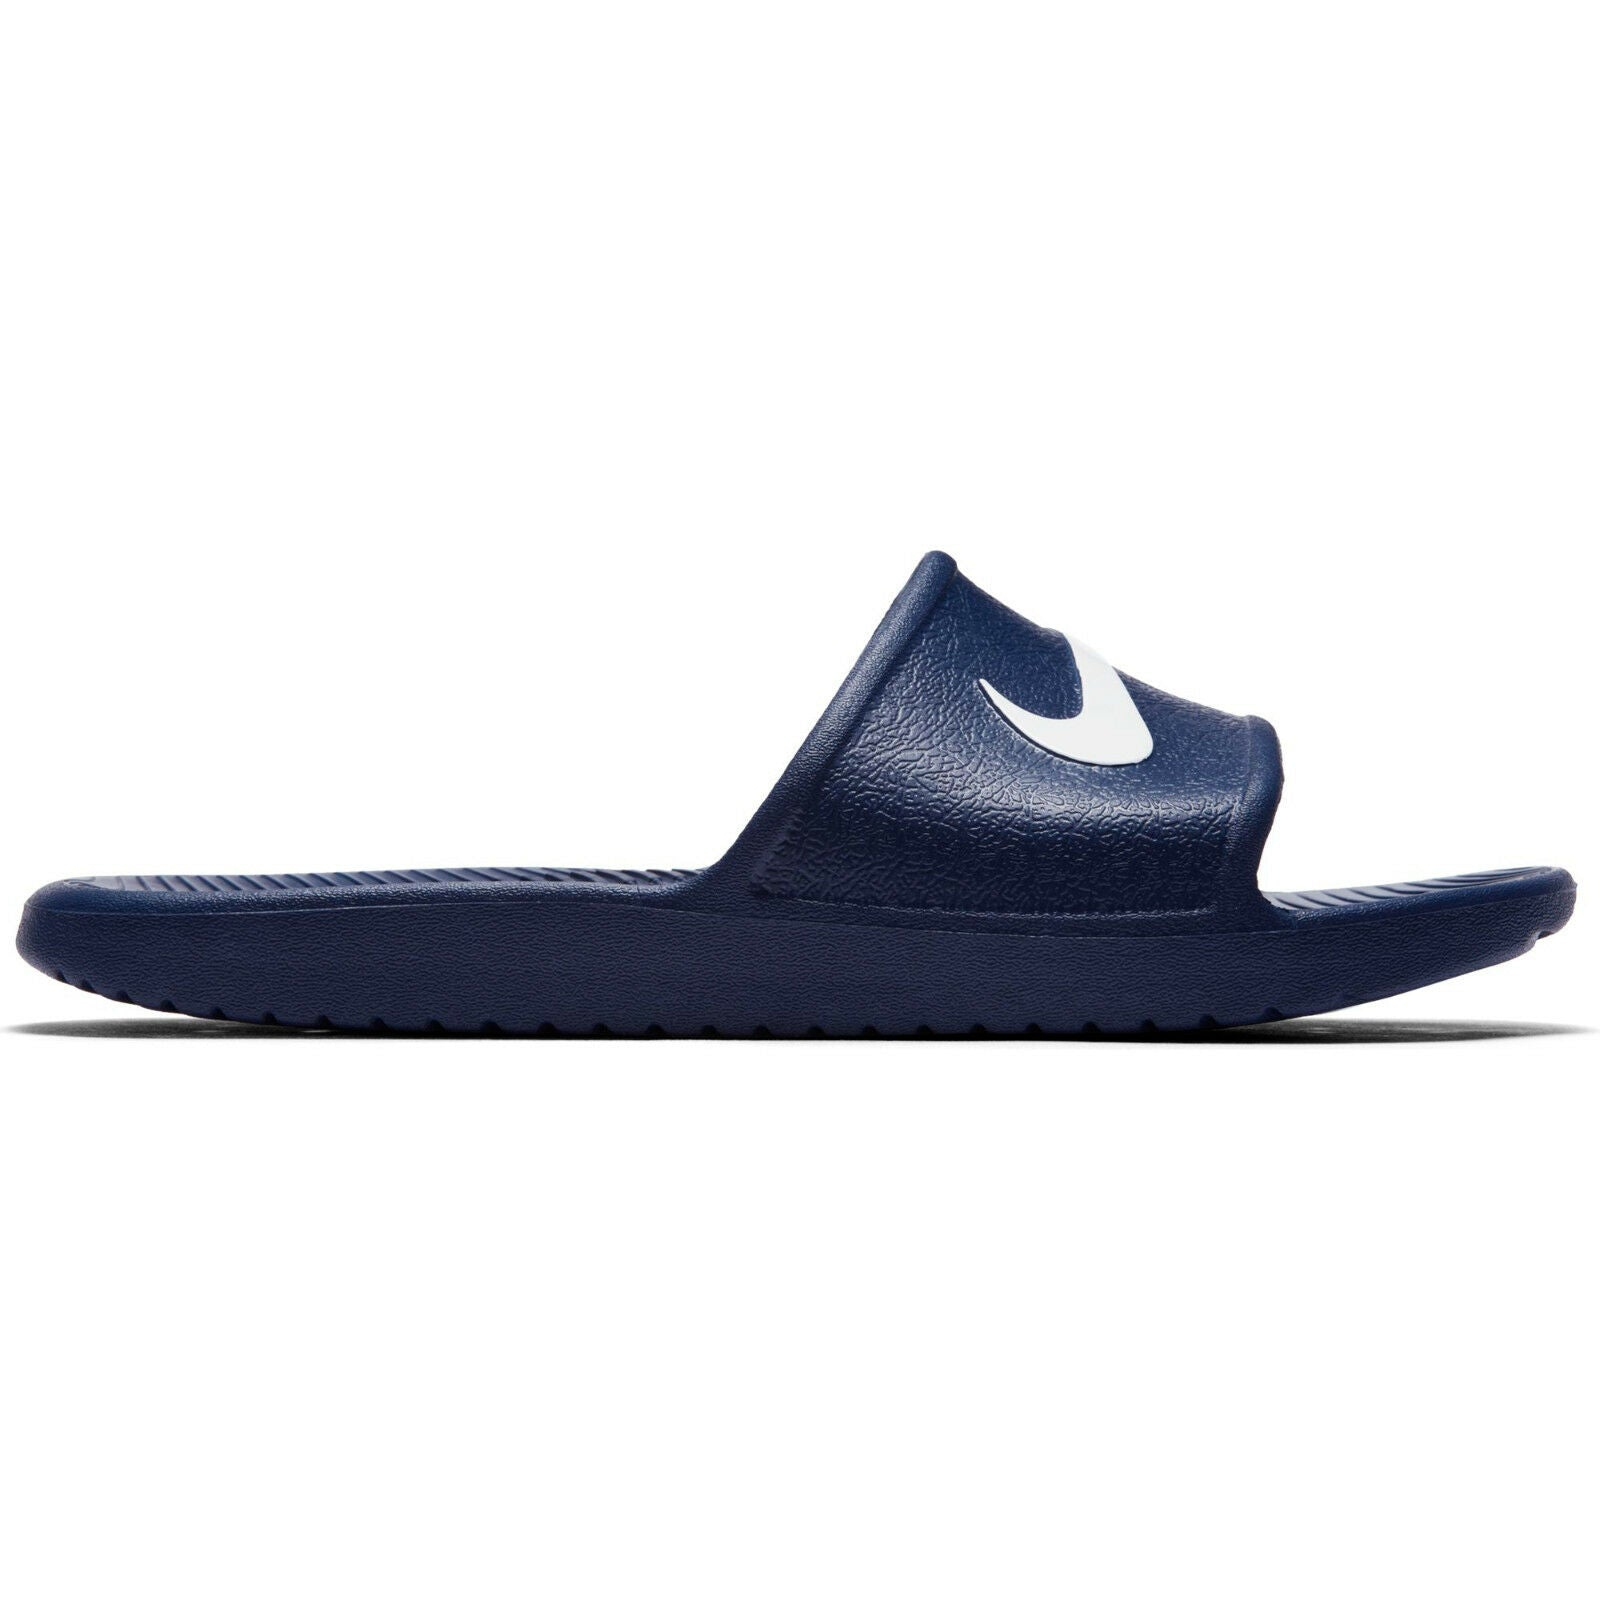 NIKE Kawa Slides - Valley Sports UK